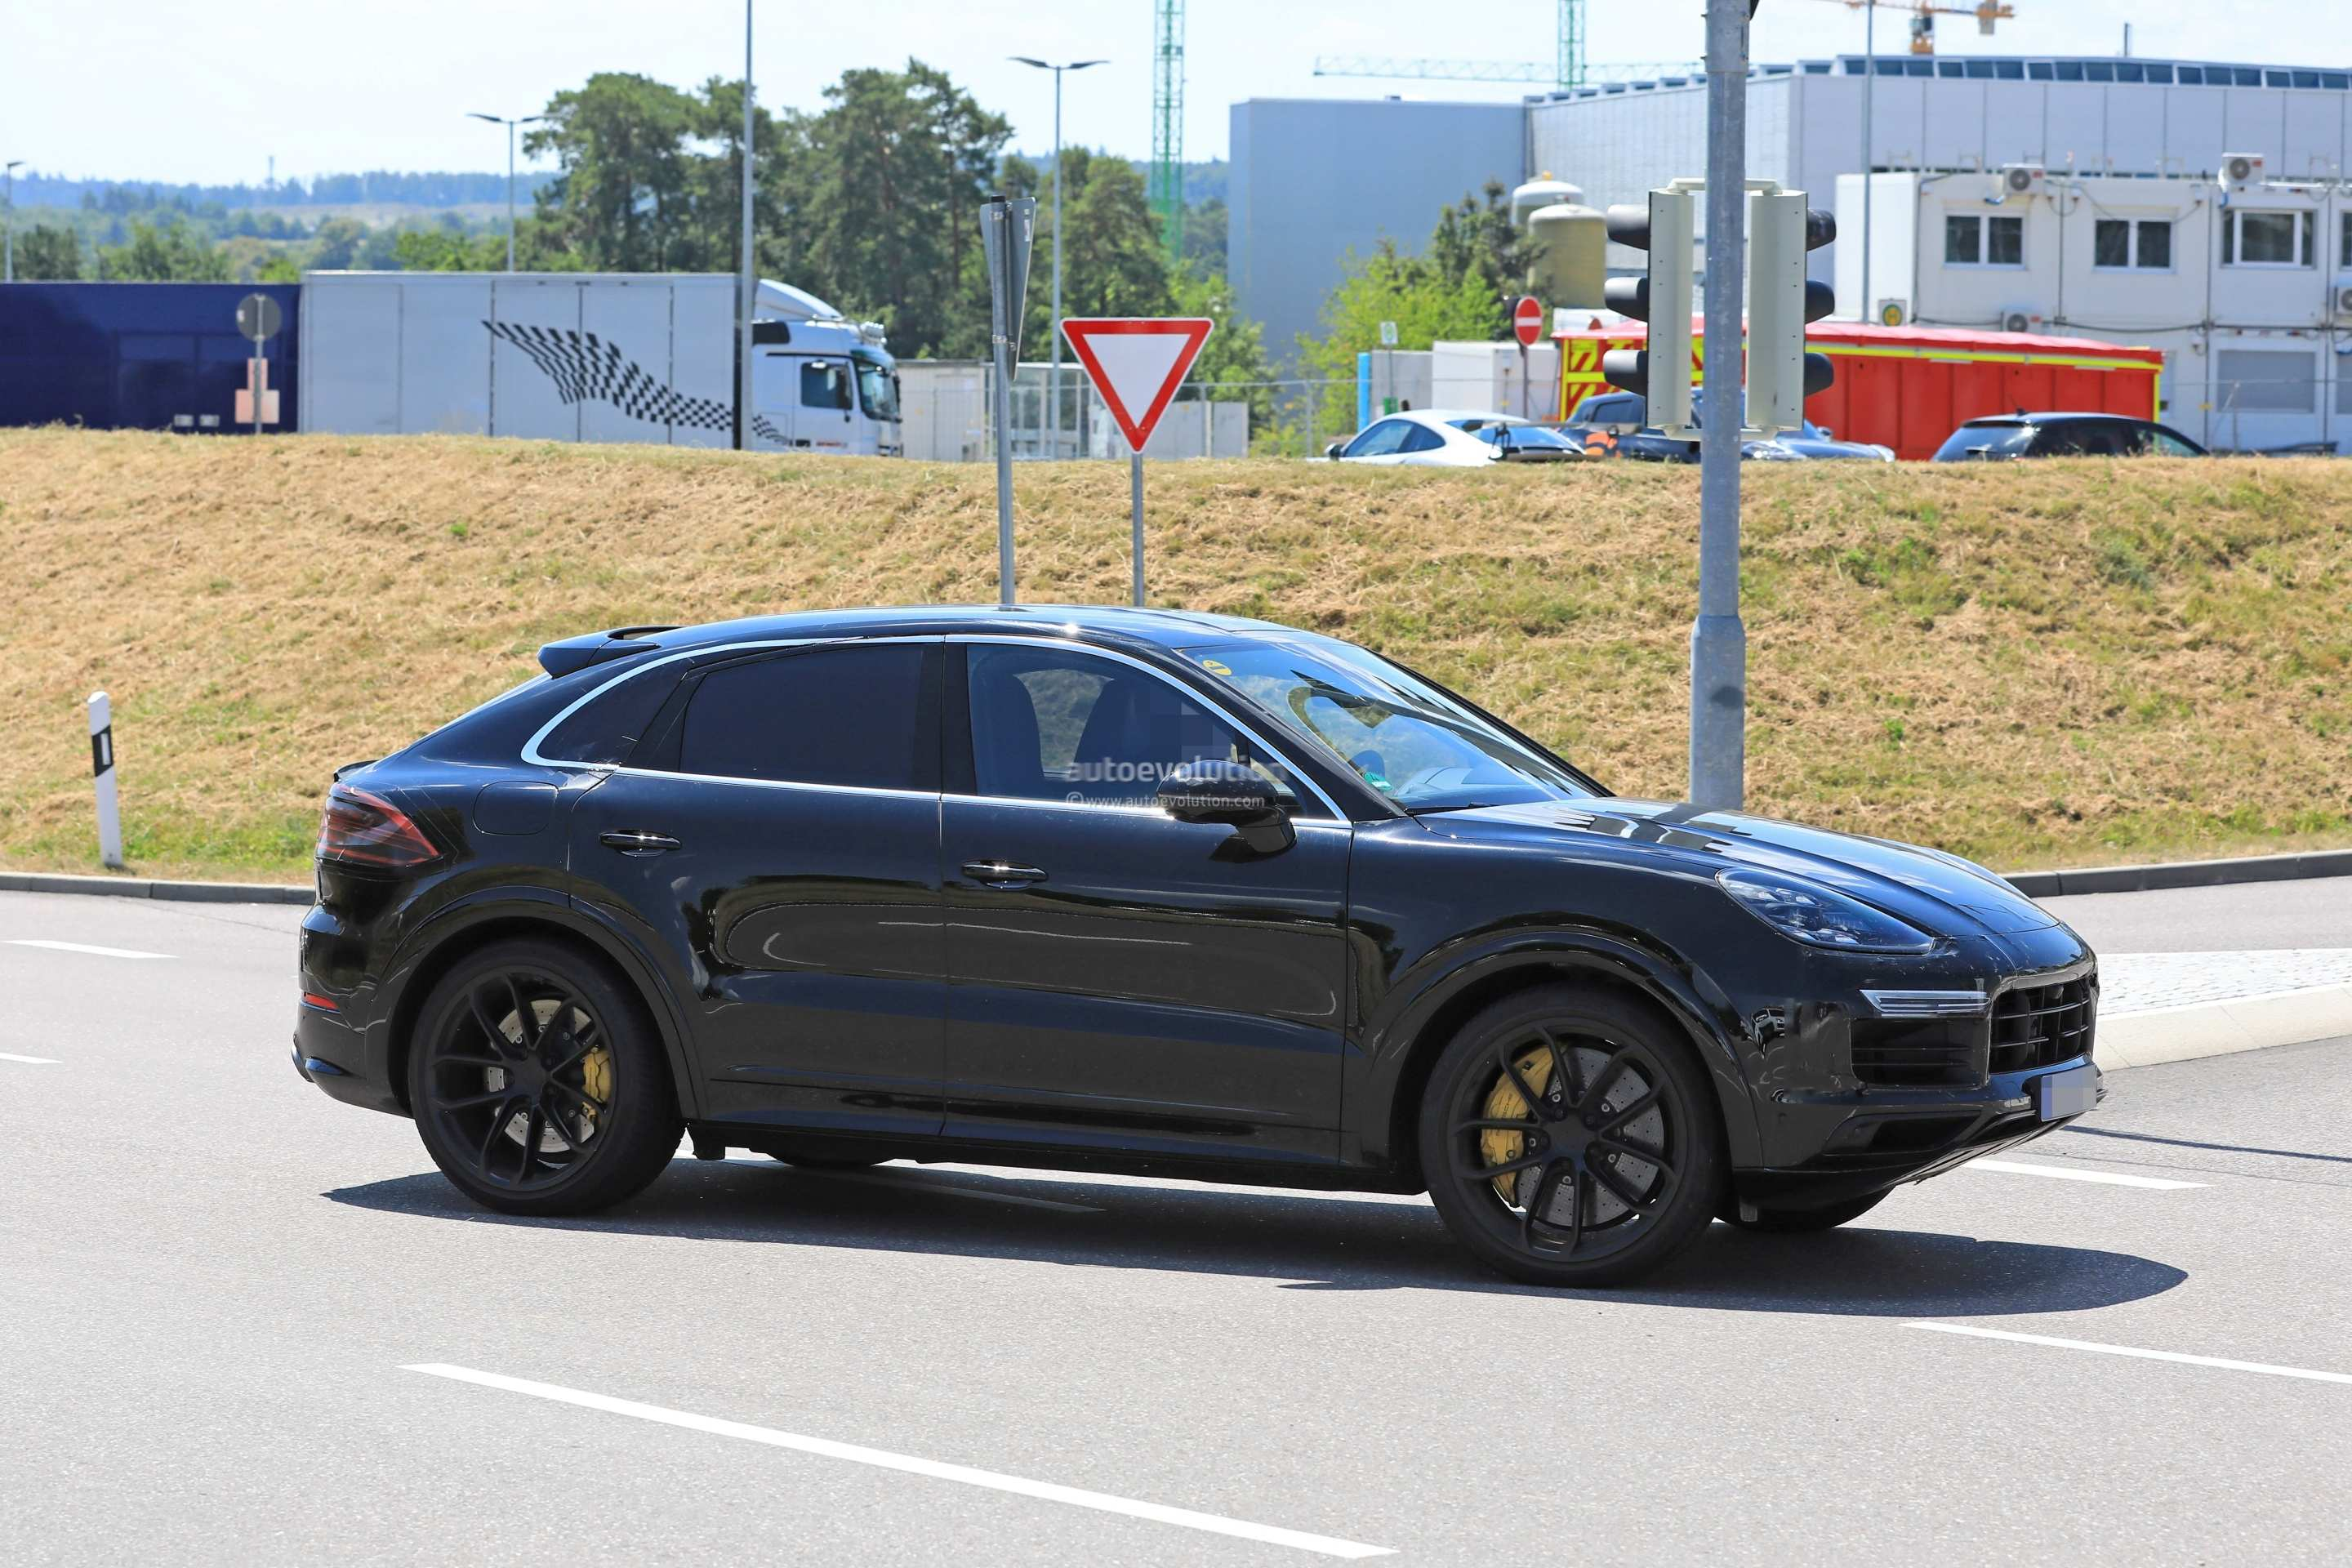 60 Best 2020 Porsche Macan Turbo Photos